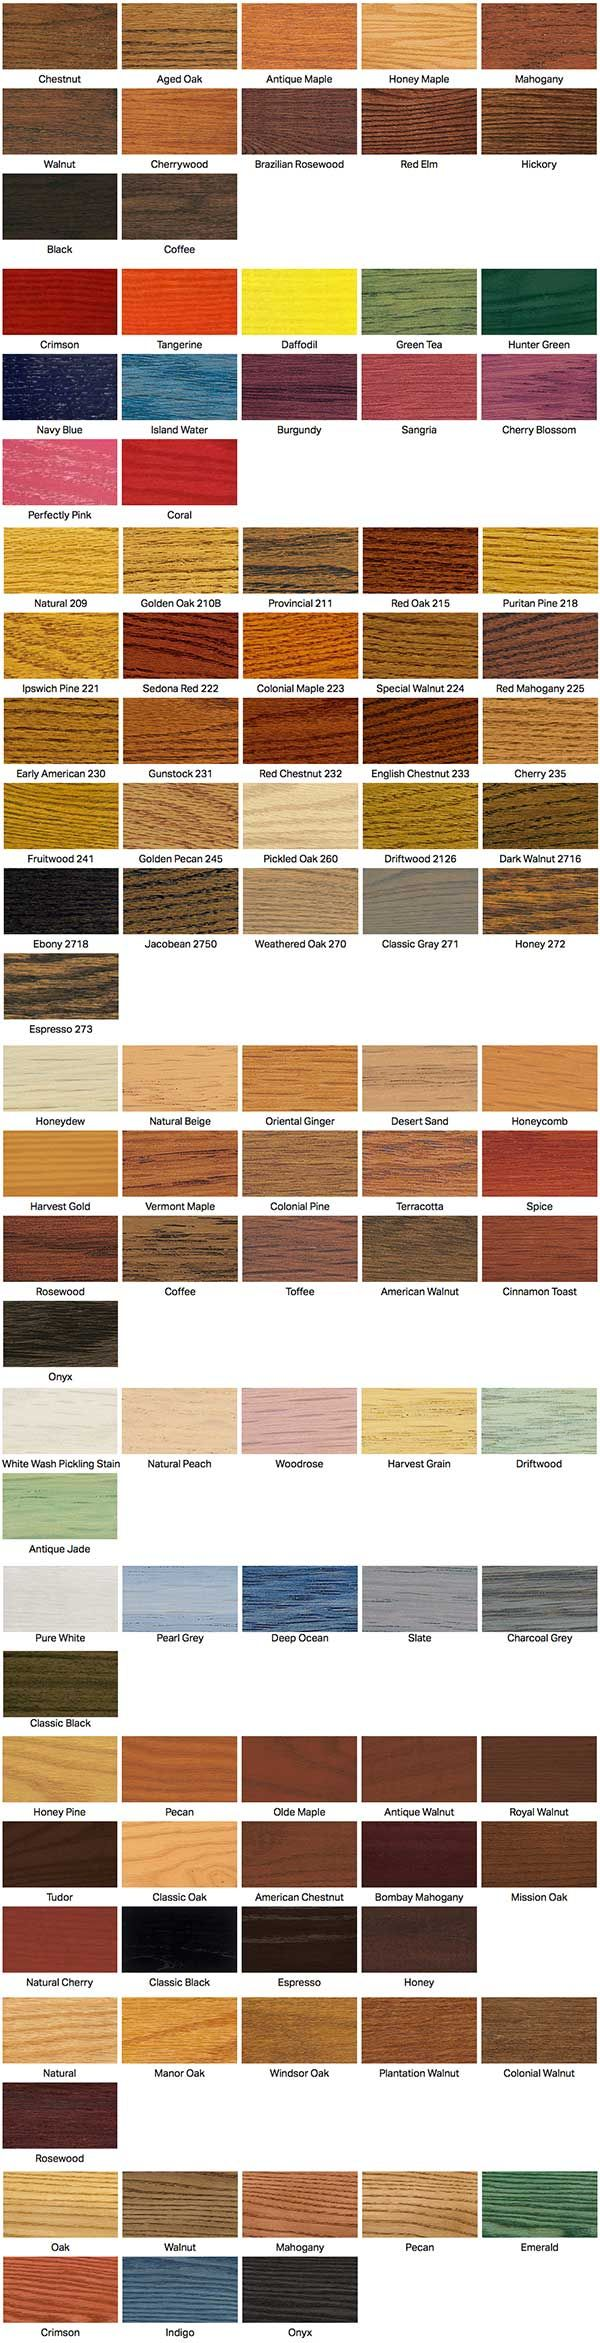 Wood floor stain colors from minwax by indianapolis for Wood floor paint colors